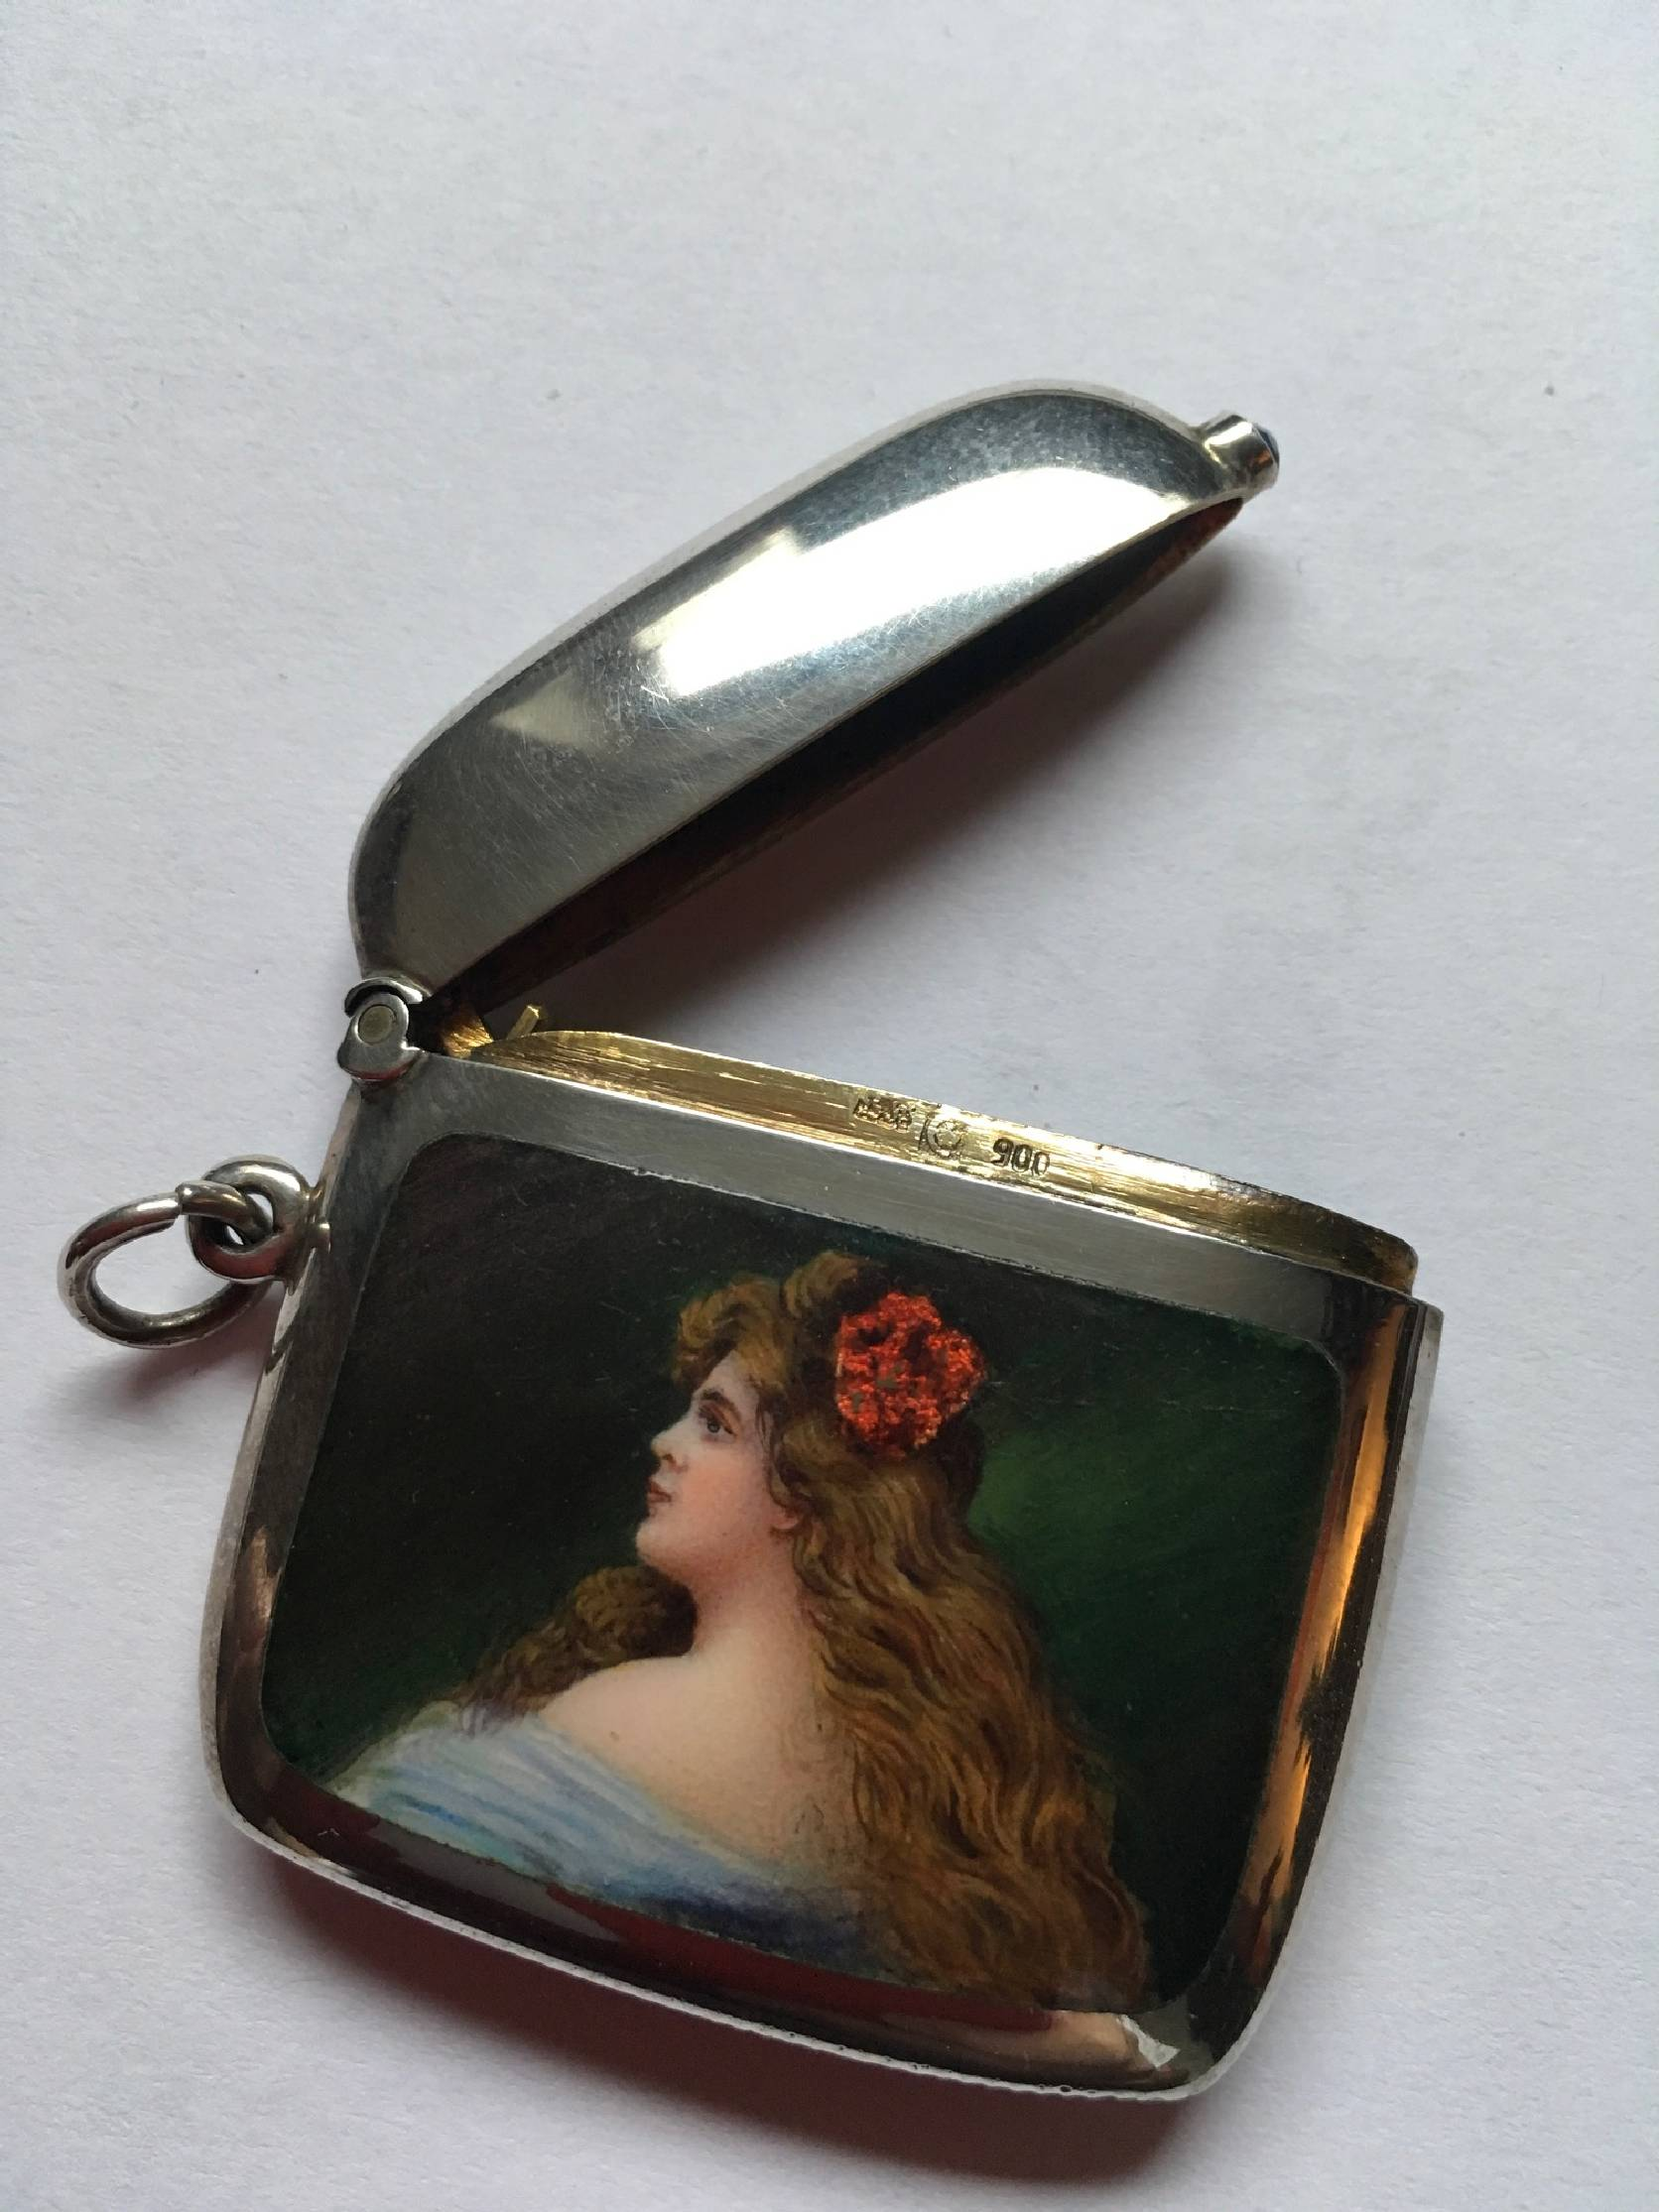 Handpainted around 1905-10